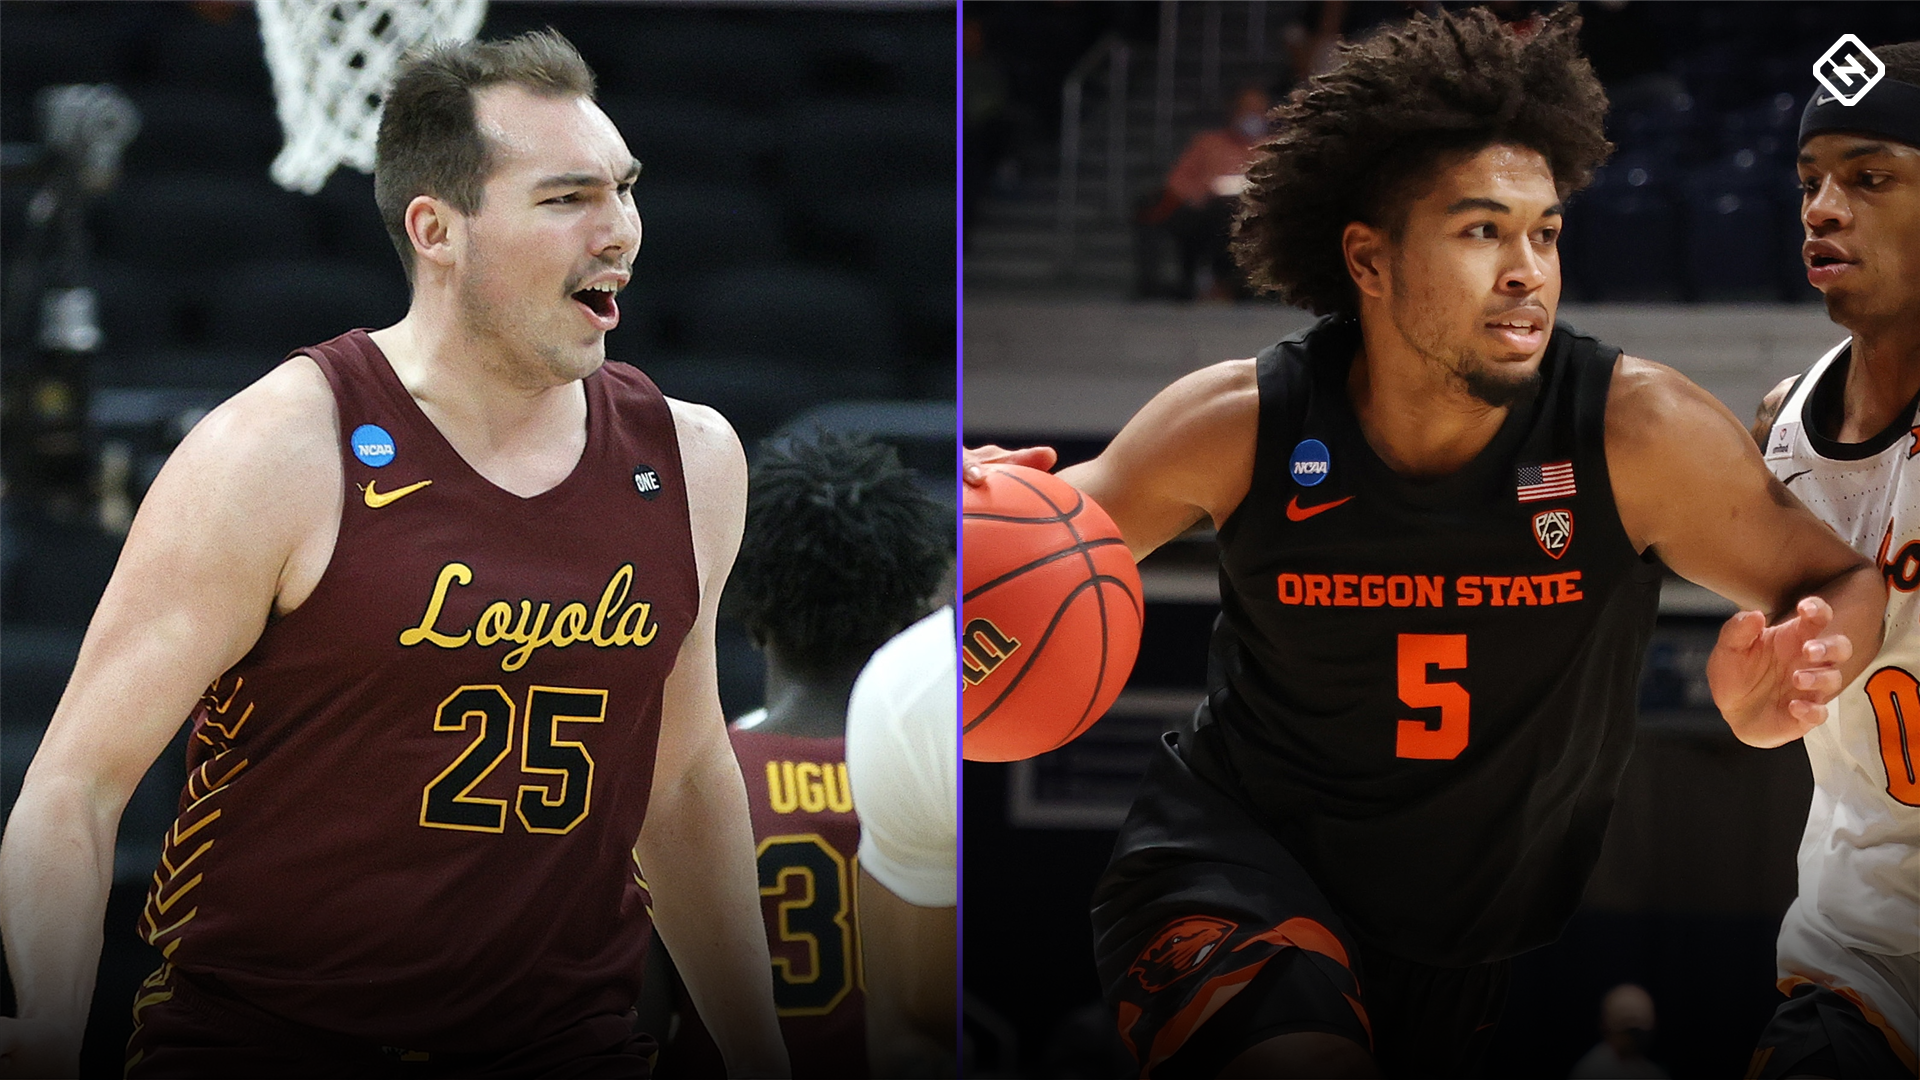 Loyola Chicago vs. Oregon State odds, picks, predictions for March Madness  Sweet 16 game | Sporting News Canada